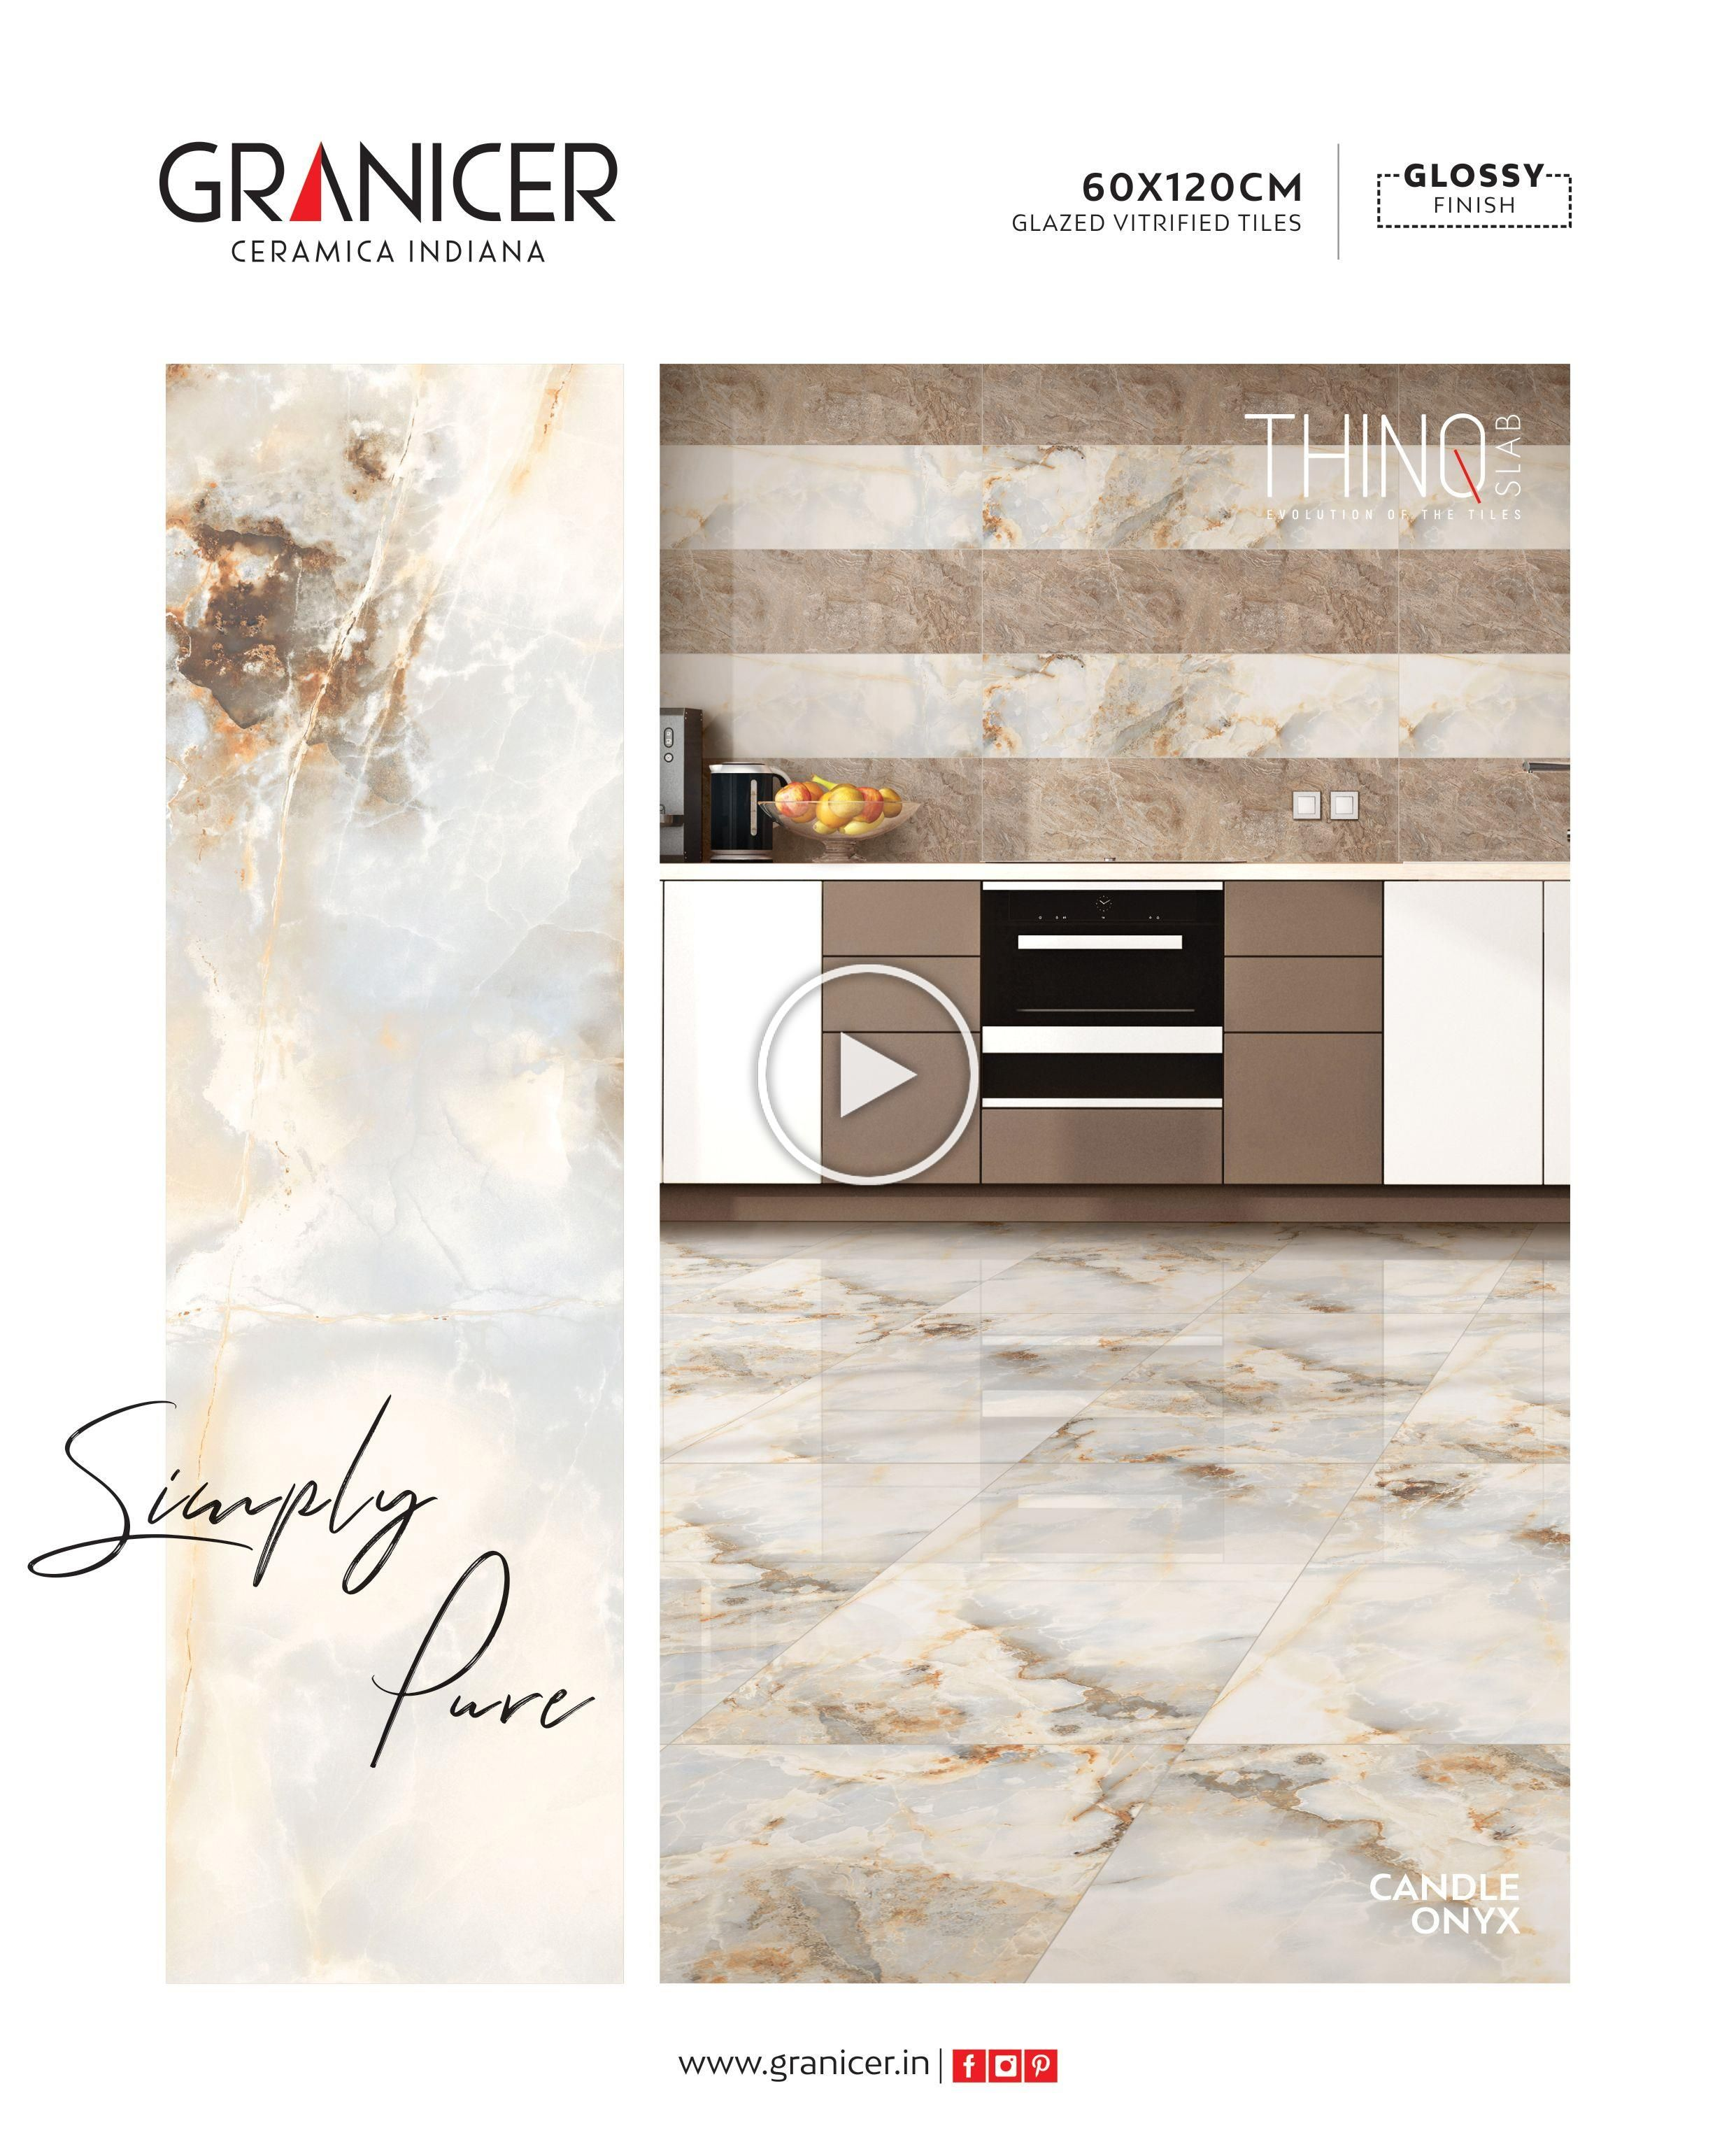 Art Comes In All Forms Choose Our Spectacular Aesthetic Tiles For Your Space Candle Onyx Granicerceramicaindia In 2020 Vitrified Tiles Tile Design Beautiful Tile